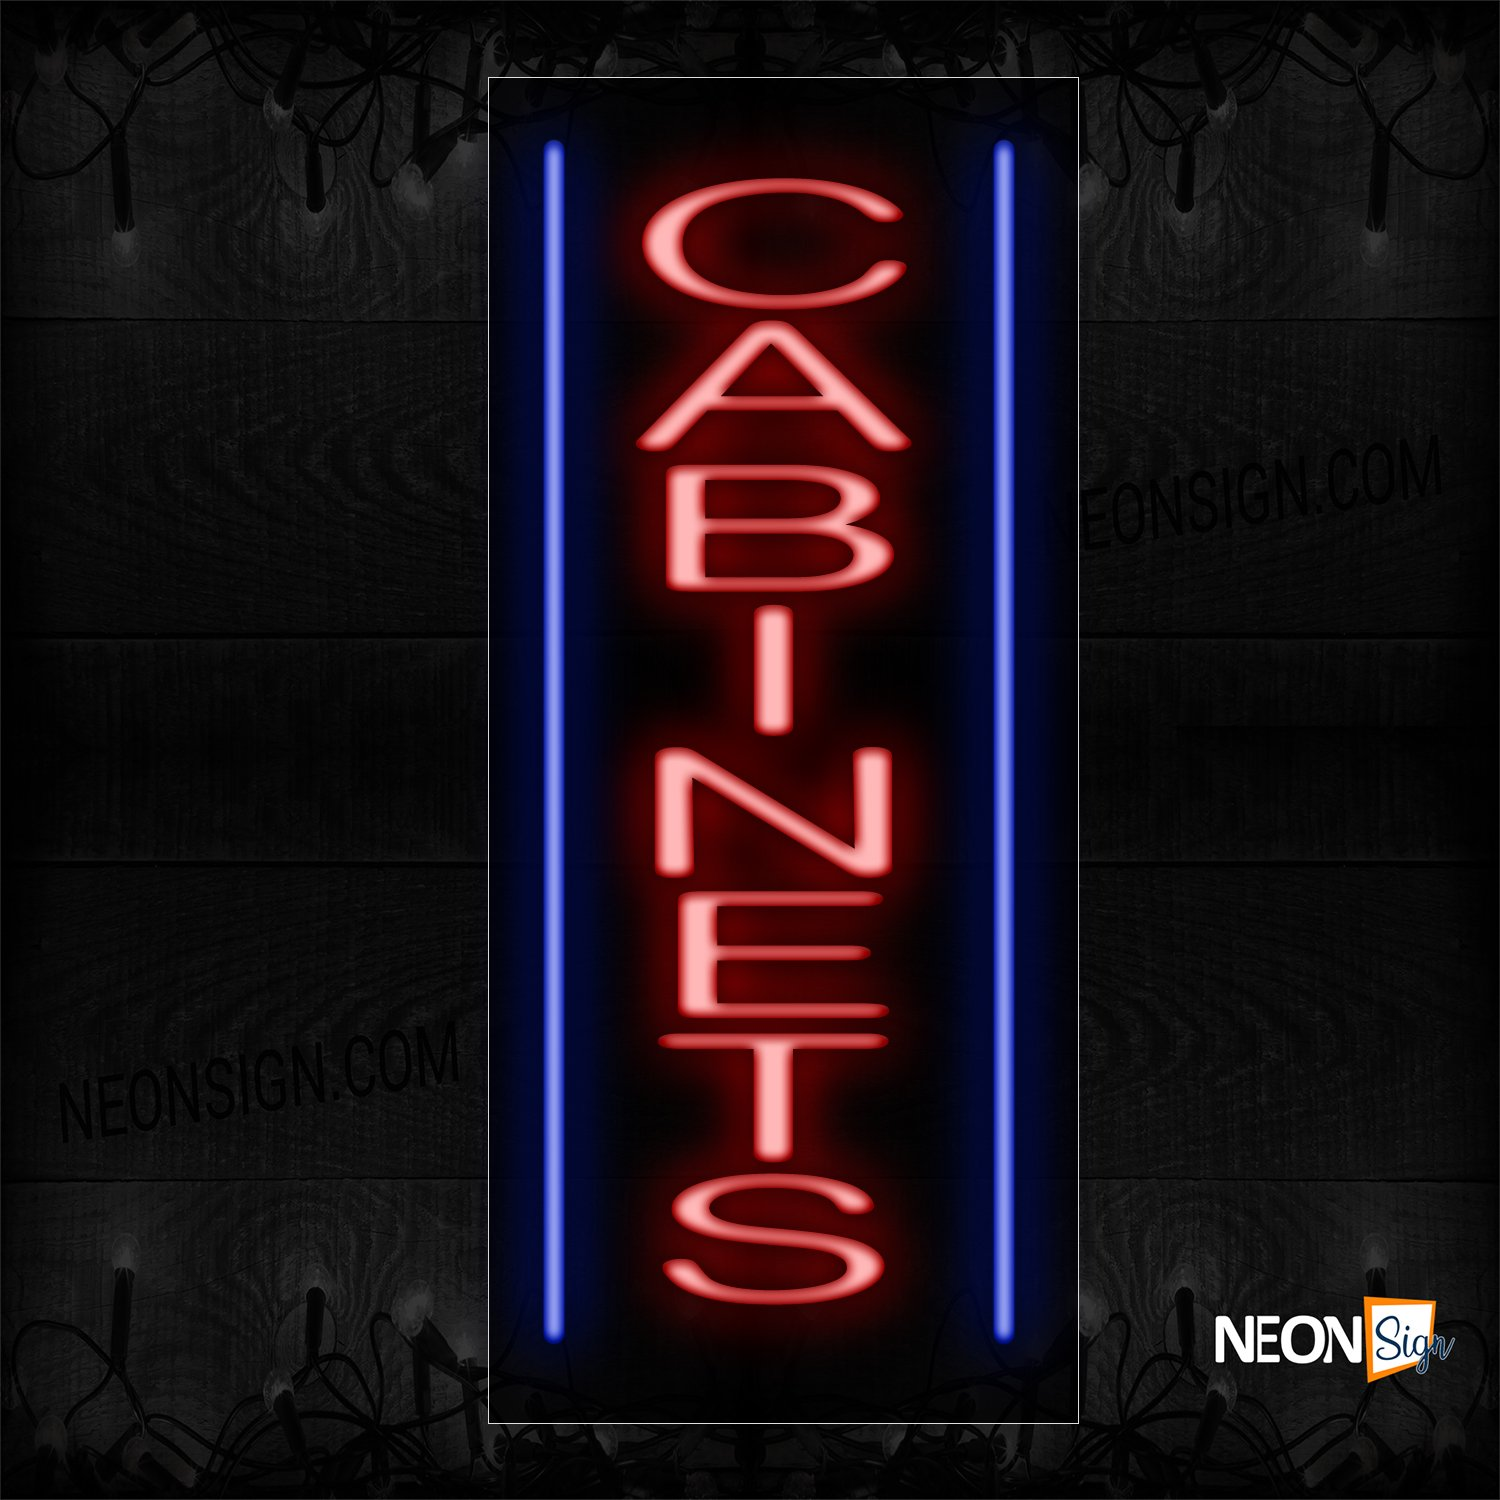 Image of 11528 Cabinets With Border Neon Sign_13x32 Black Backing